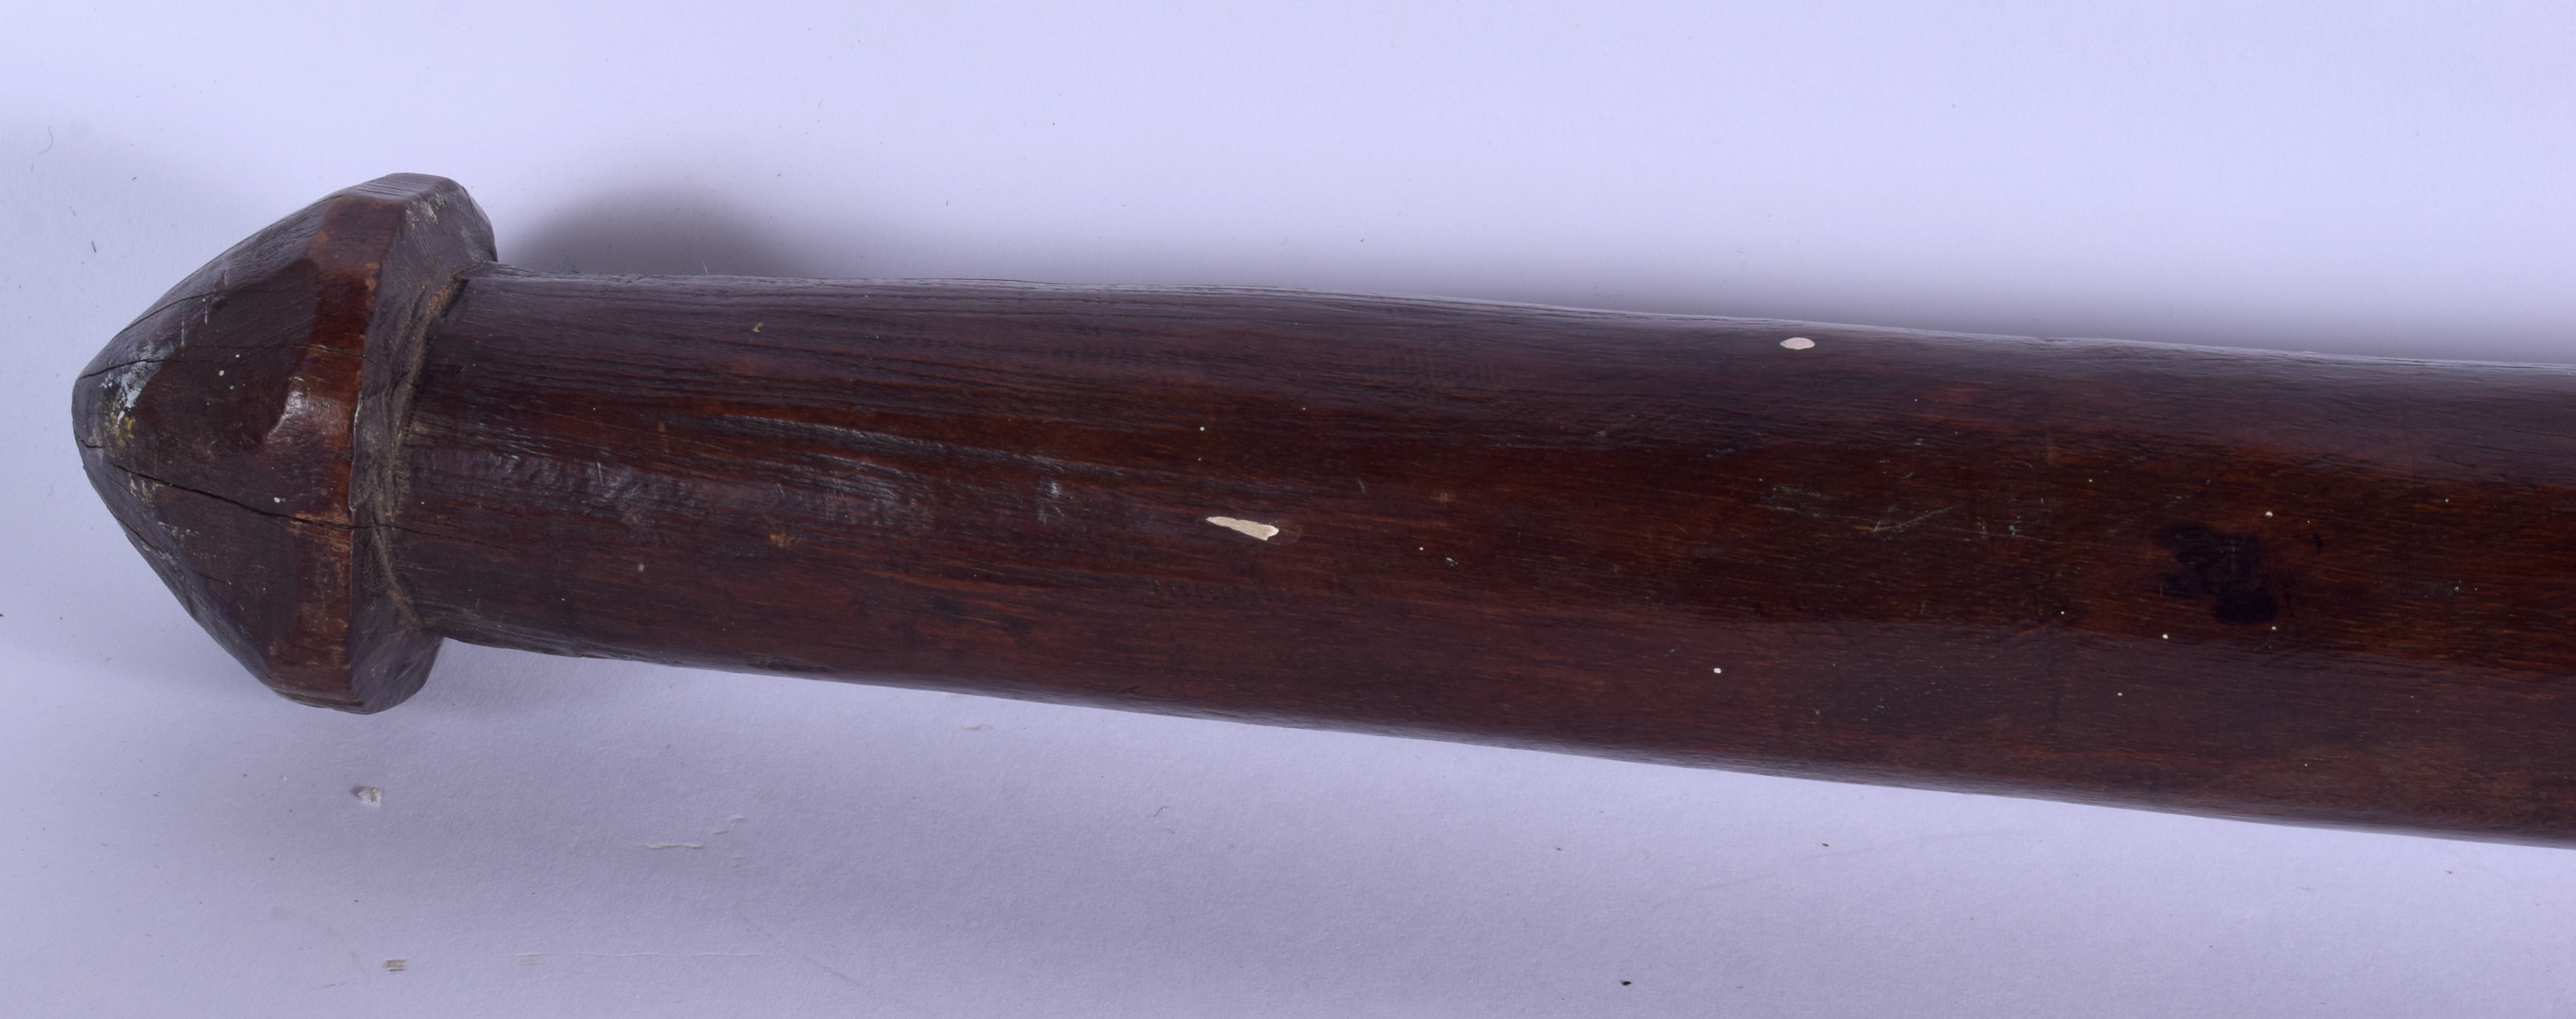 A 19TH CENTURY FIJIAN TRIBAL SALI CLUB decorated with motifs. 99 cm long. - Image 7 of 7